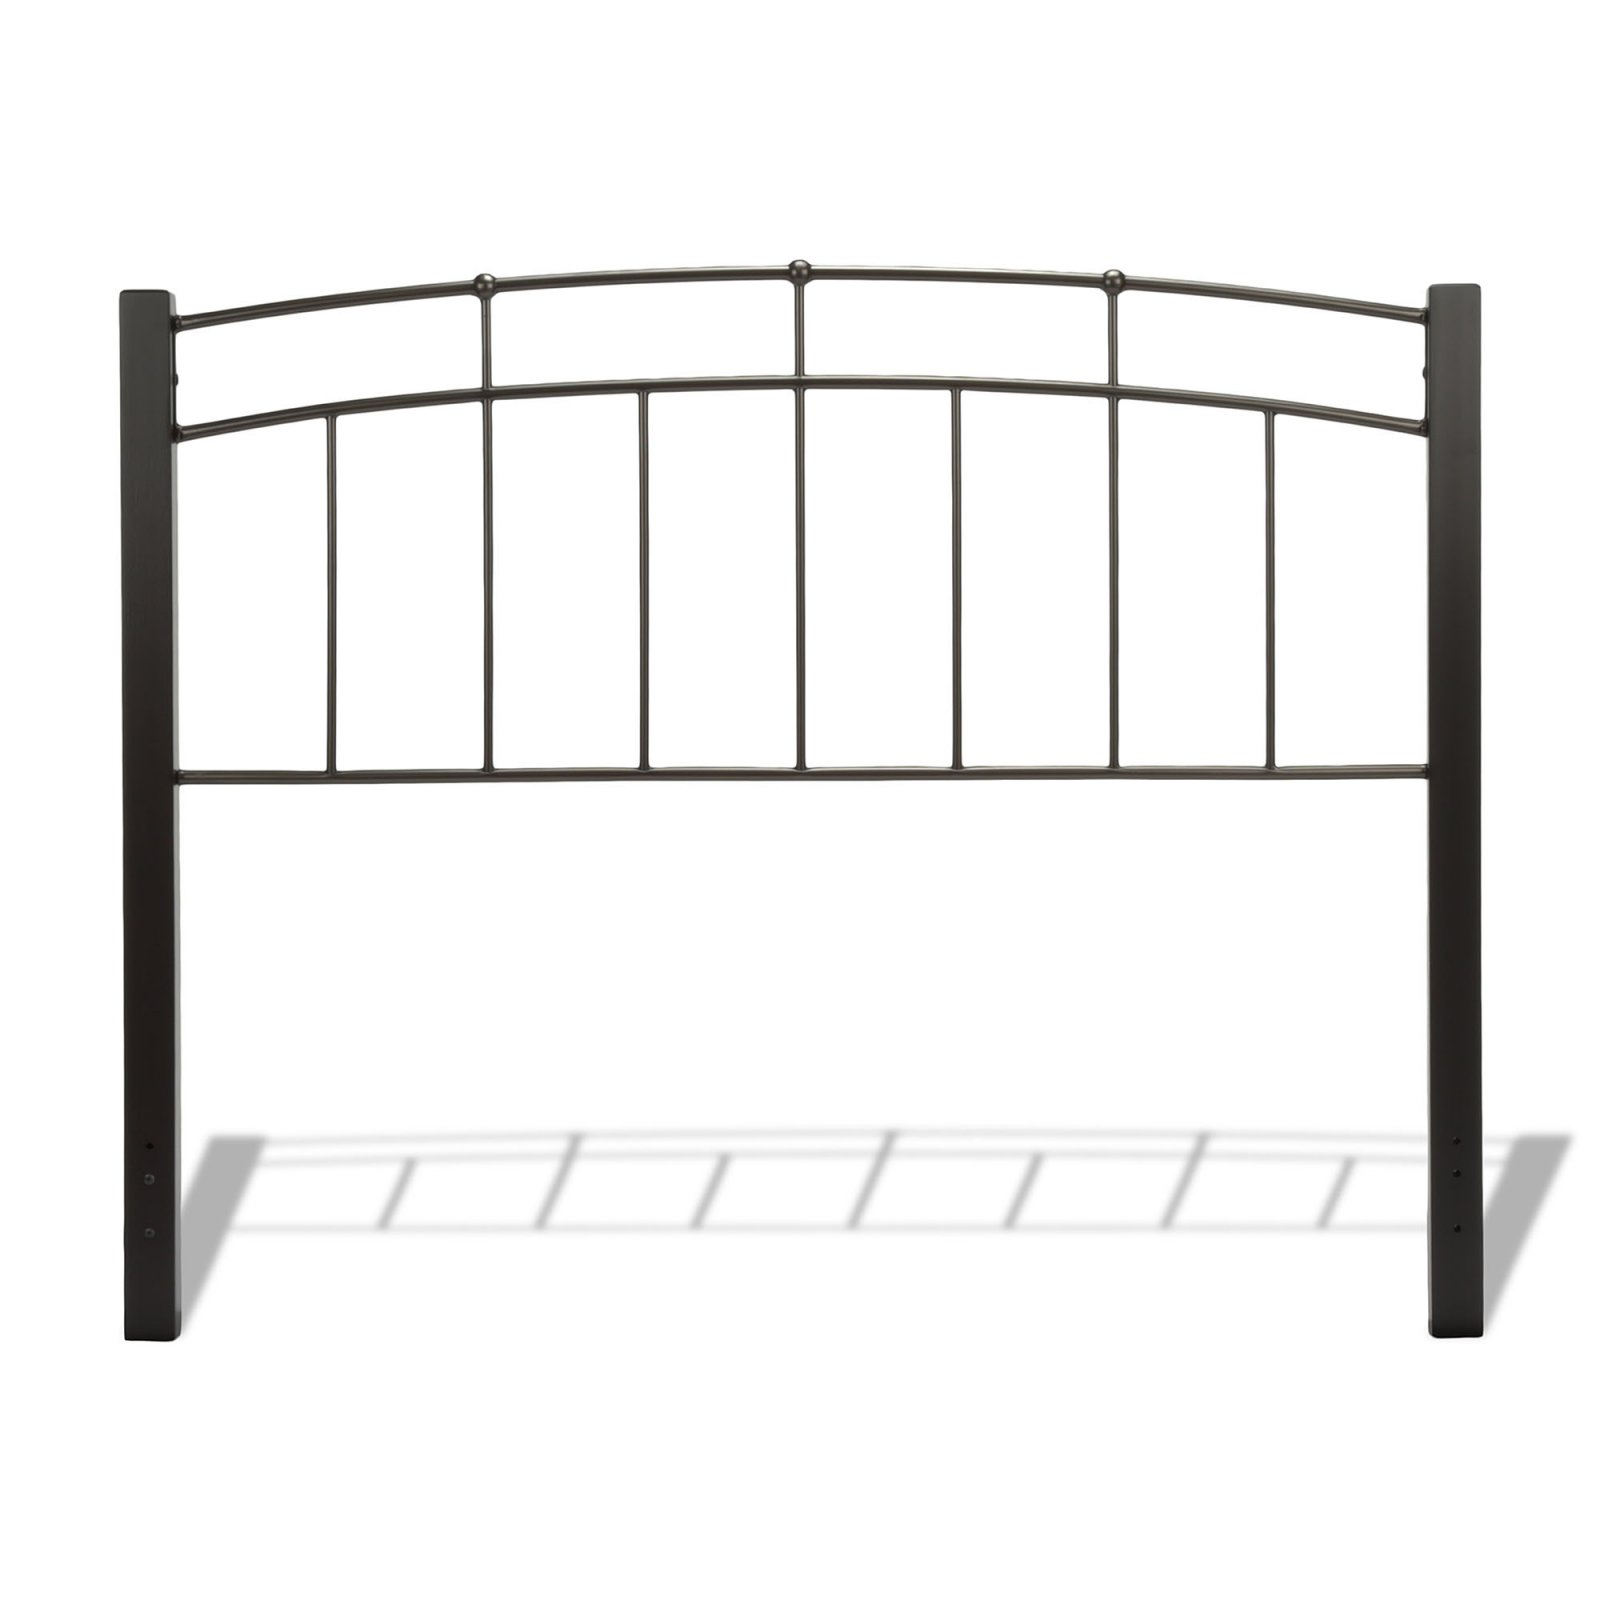 Scottsdale Metal Headboard with Dark Espresso Wooden Posts, Black Speckle Finish, Multiple sizes available